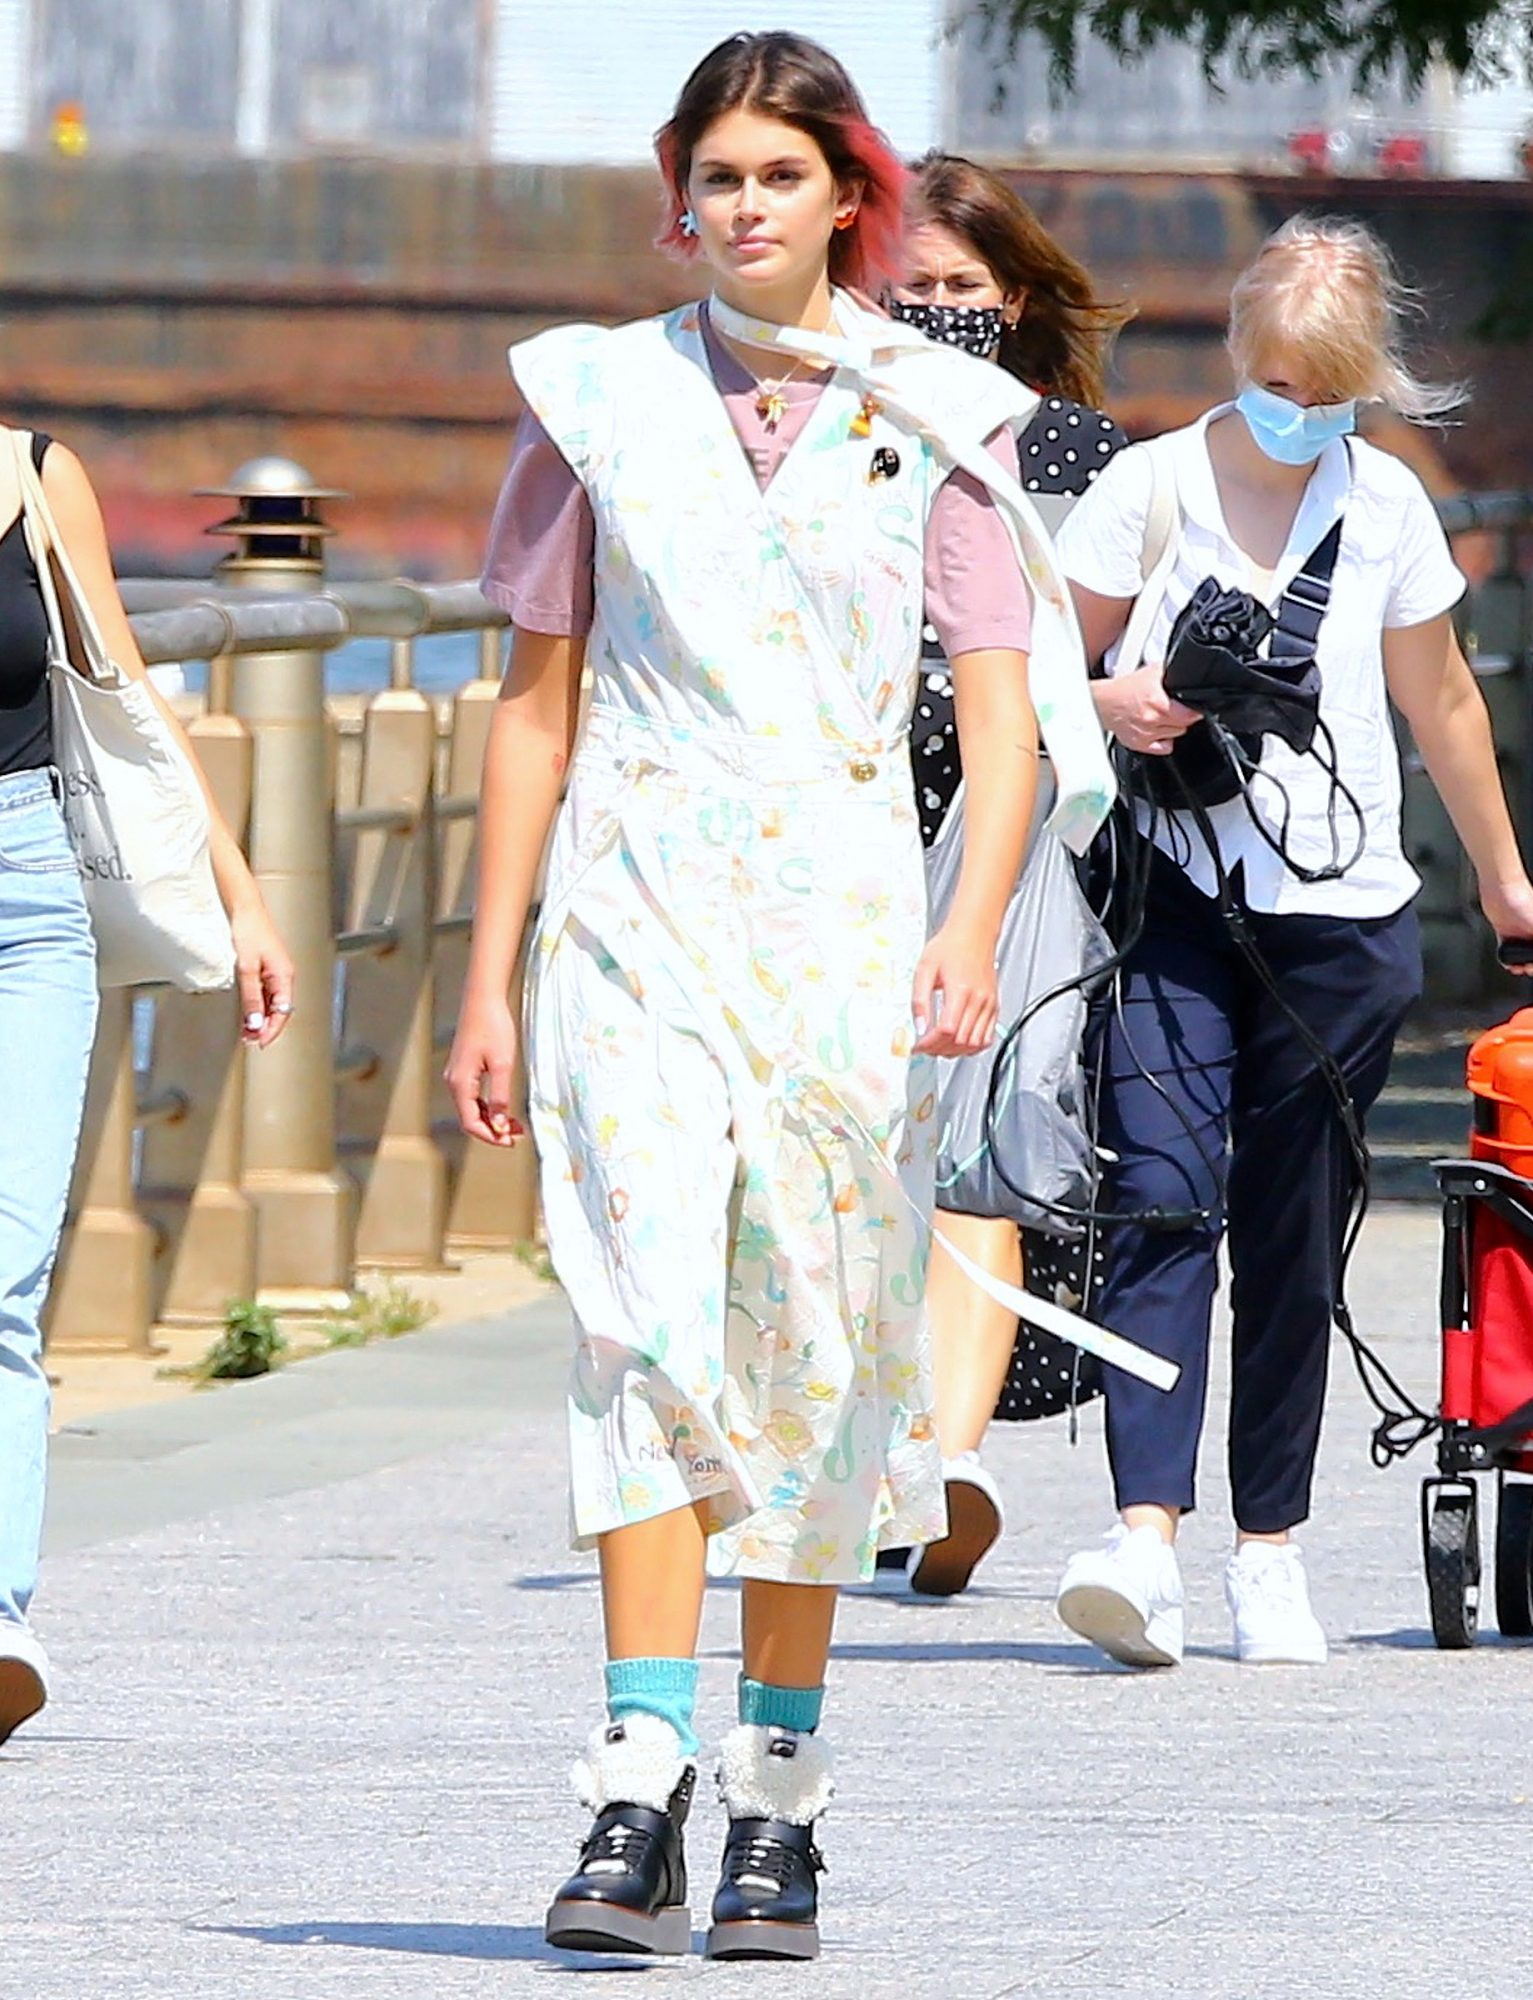 Kaia Gerber During A Photoshoot In New York